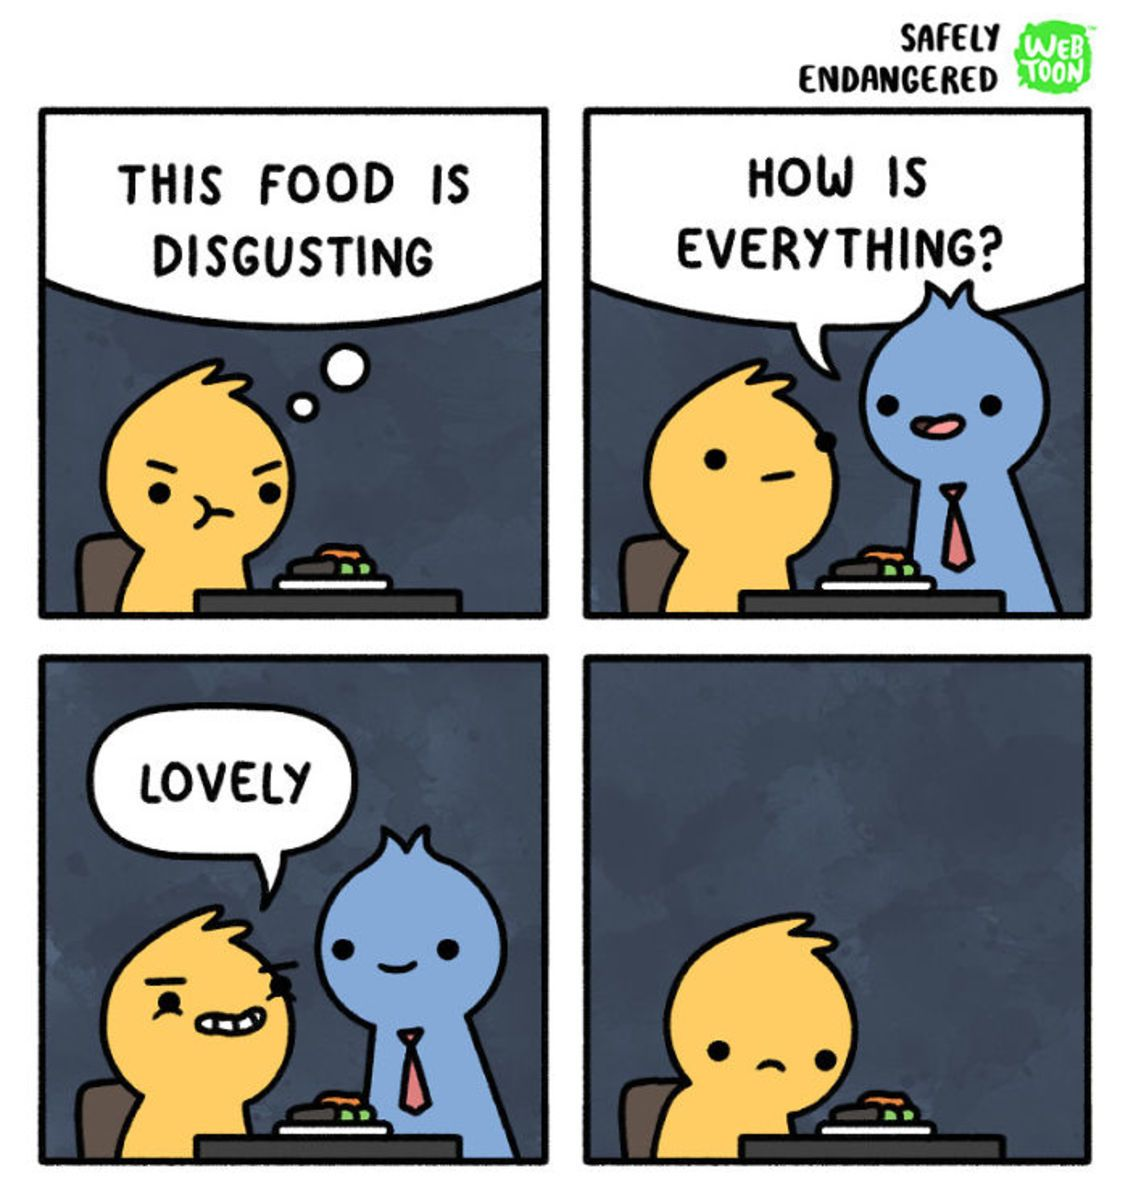 20 Hilarious Comics That Deal With Everyday Life Through Absurd Humour Funny Cartoons Funny Comic Strips Funny Comics